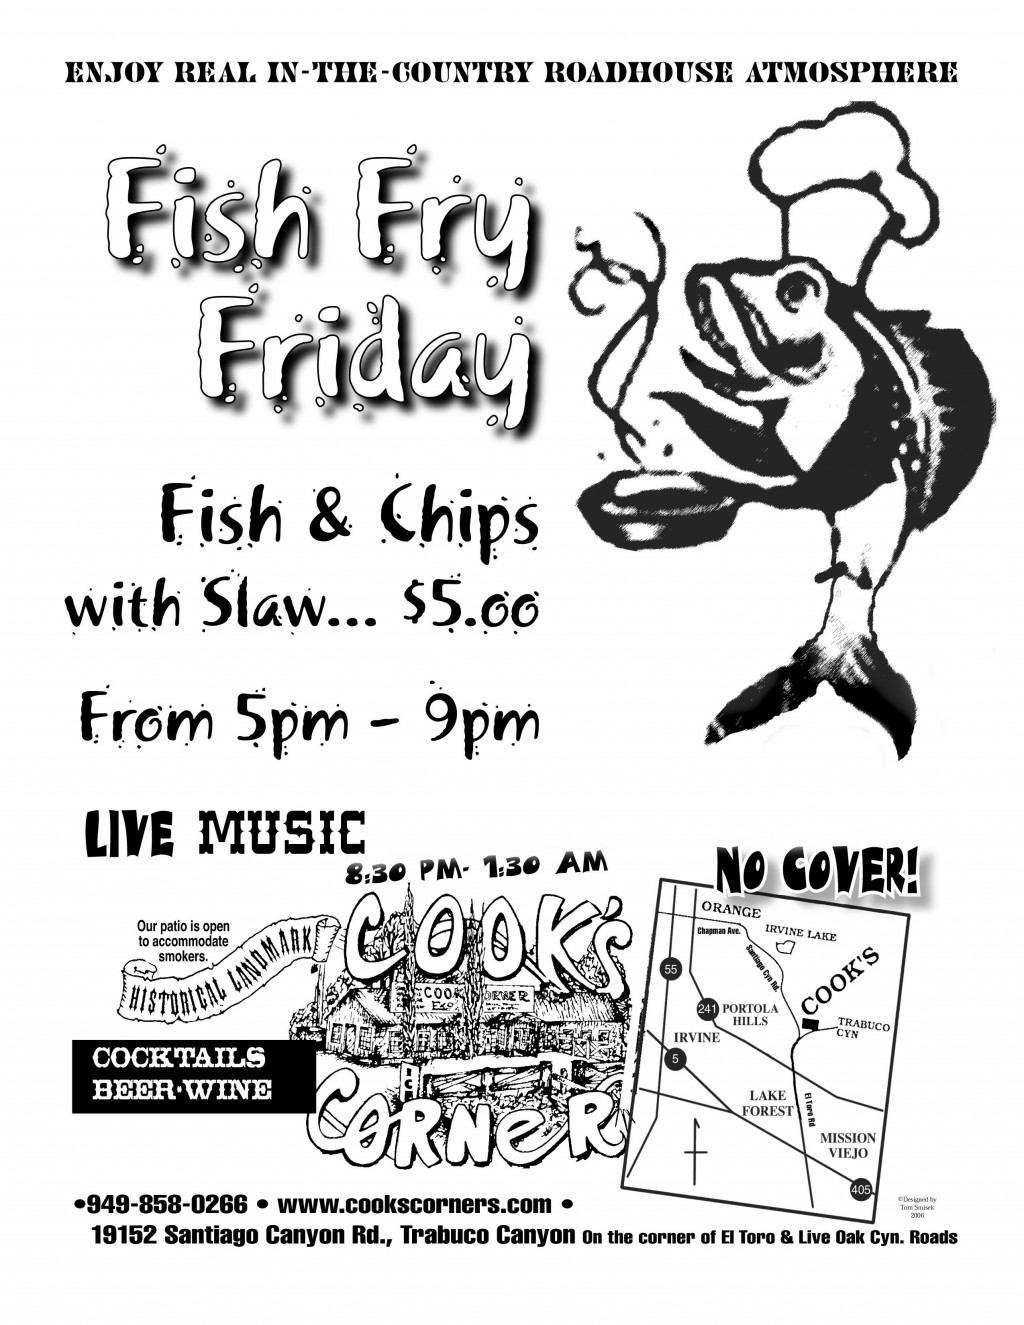 011 Remarkable Fish Fry Flyer Template High Definition  Printable Free Powerpoint PsdLarge